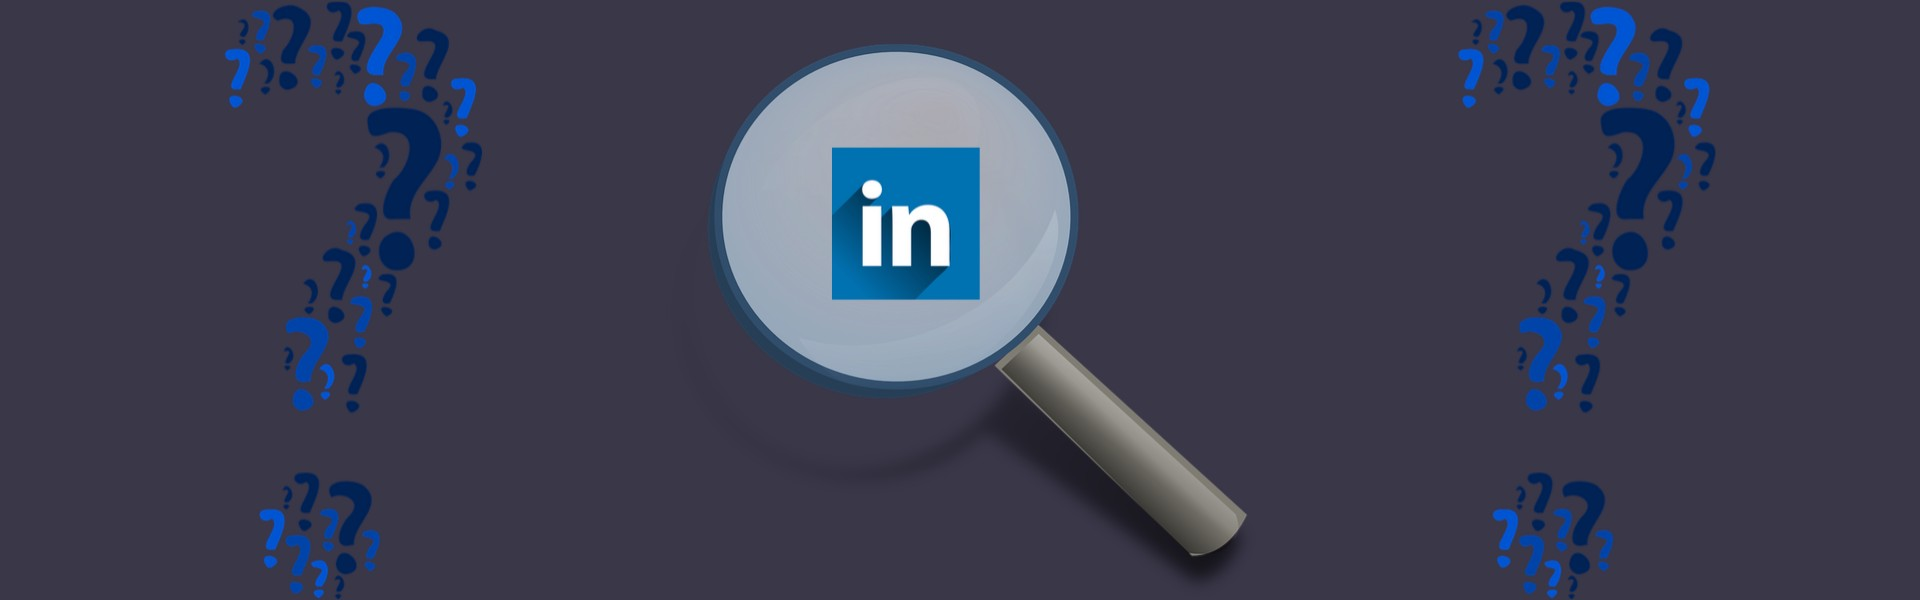 What does found you via LinkedIn search mean